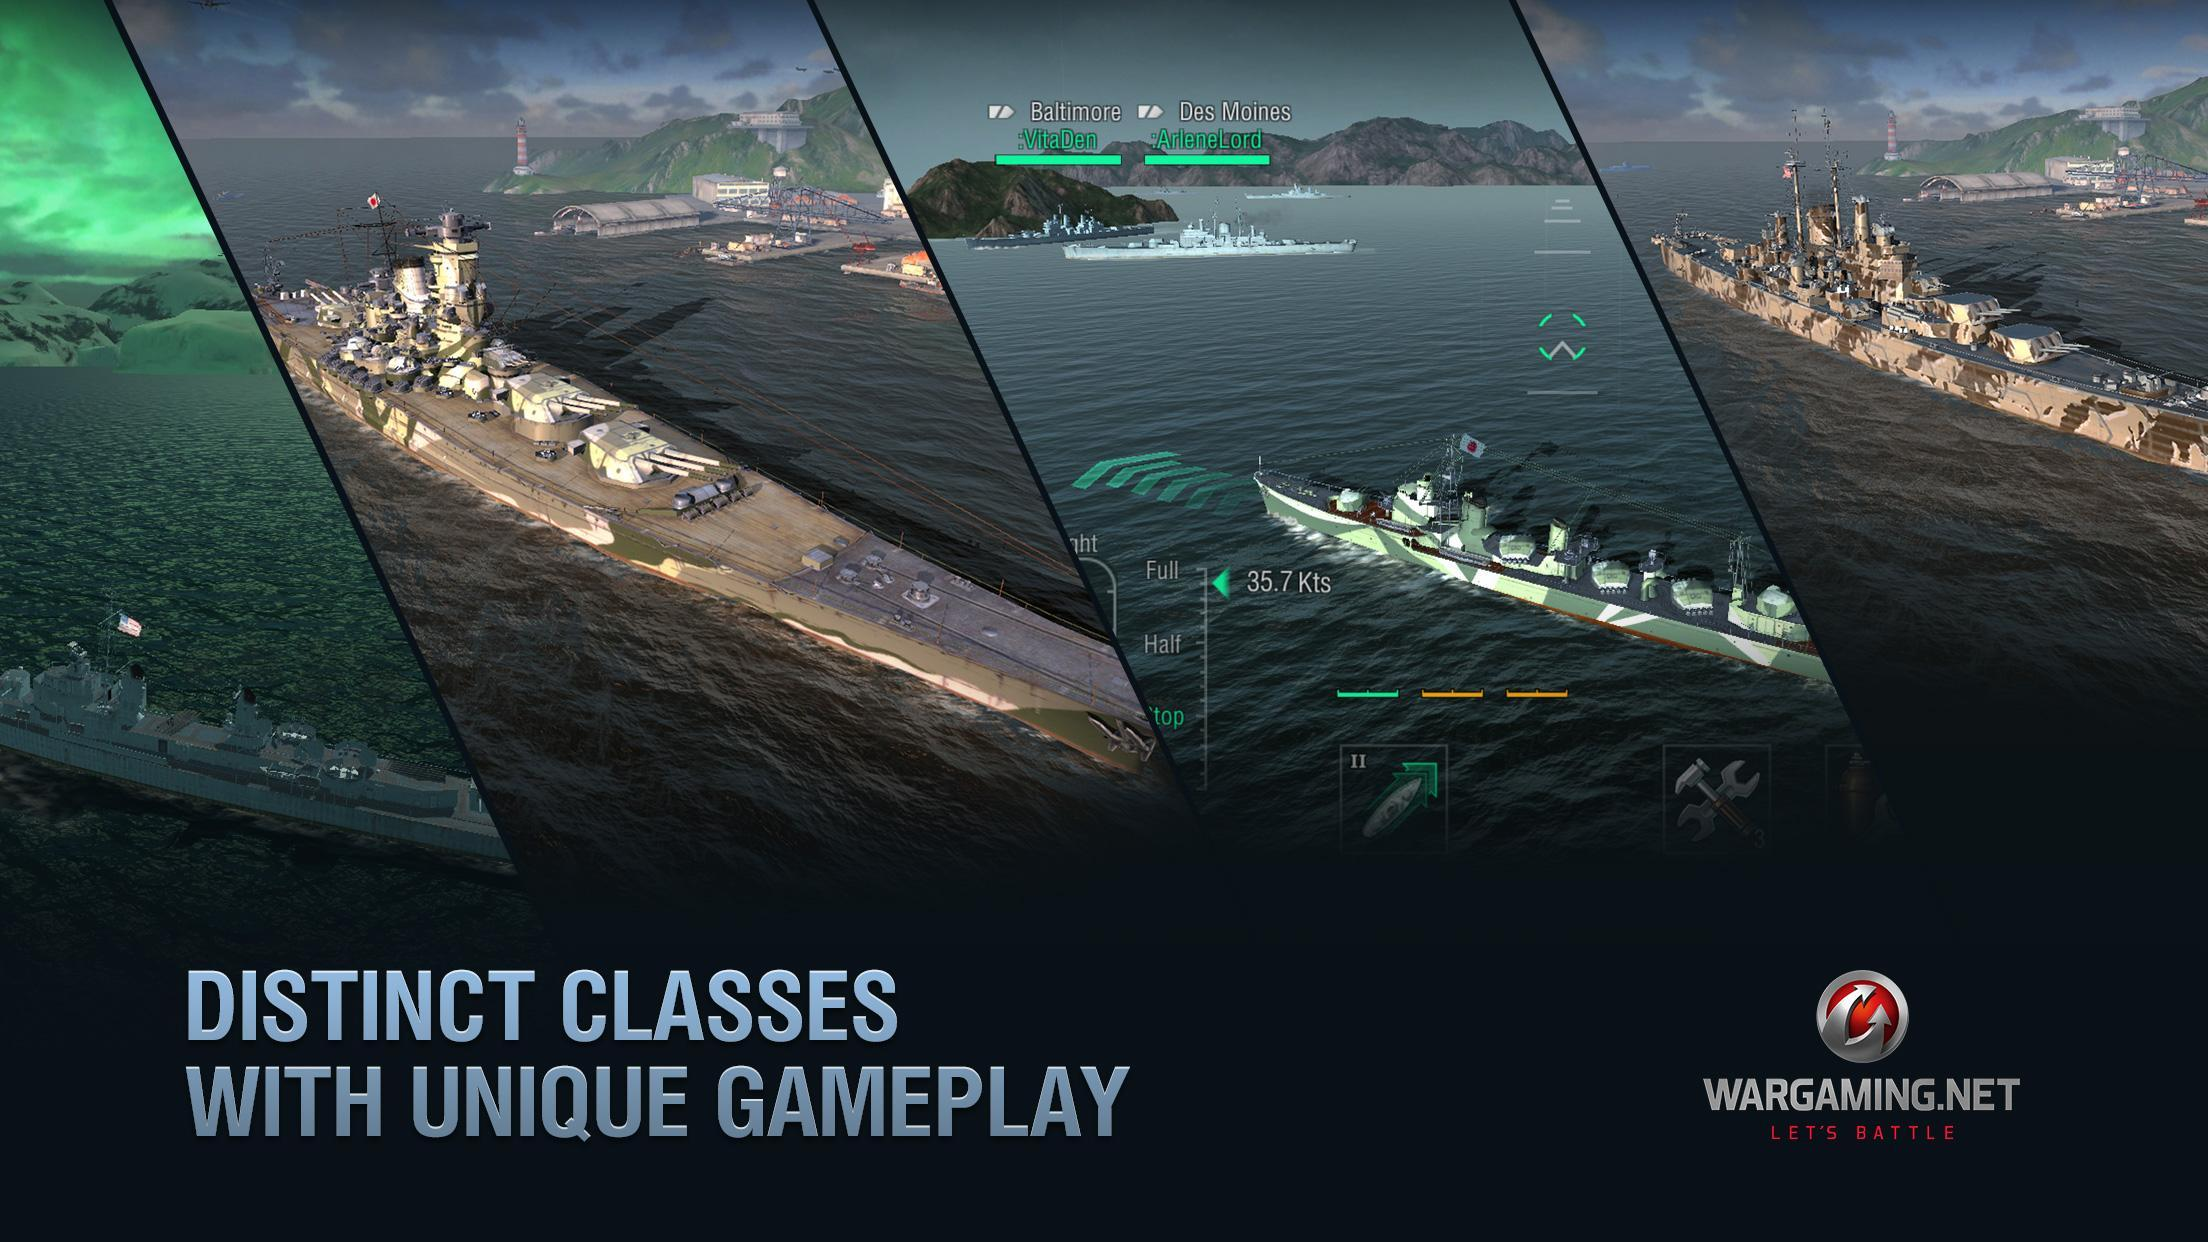 World of Warships Blitz: Gunship Action War Game 3.3.0 Screenshot 15